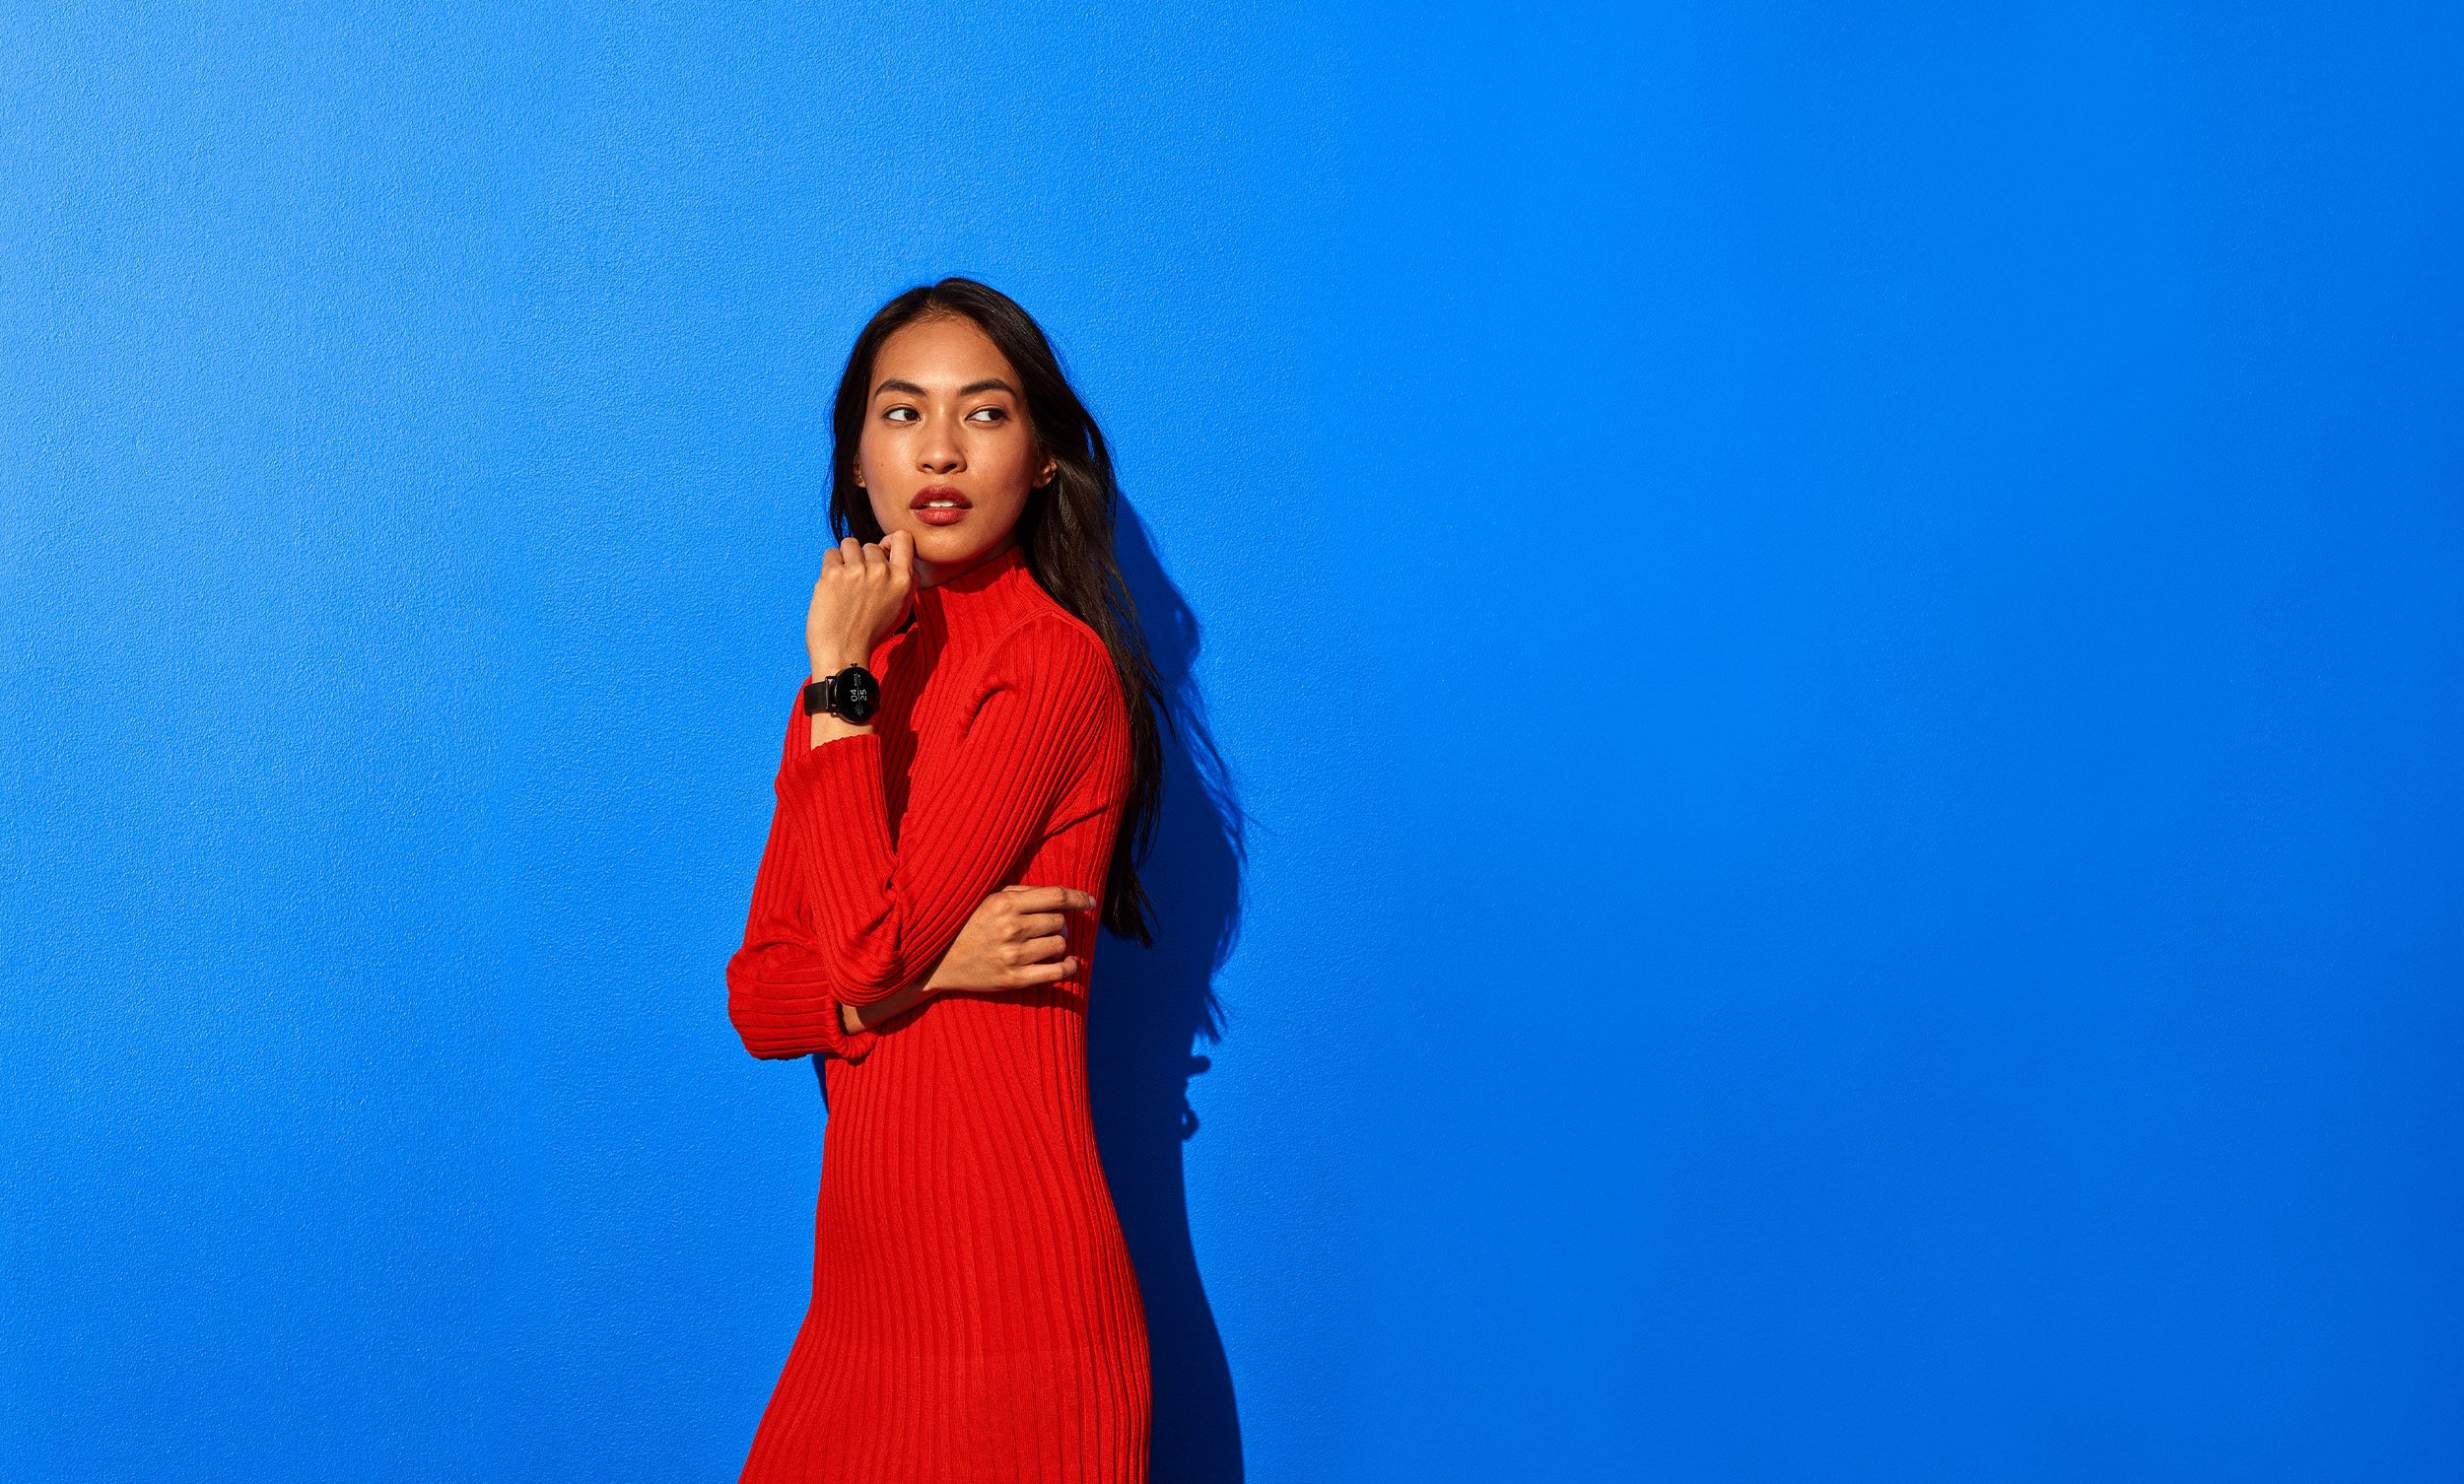 Woman in all red standing in front of blue background, wearing black Google Wear OS watch. Campaign art direction by RoAndCo Studio